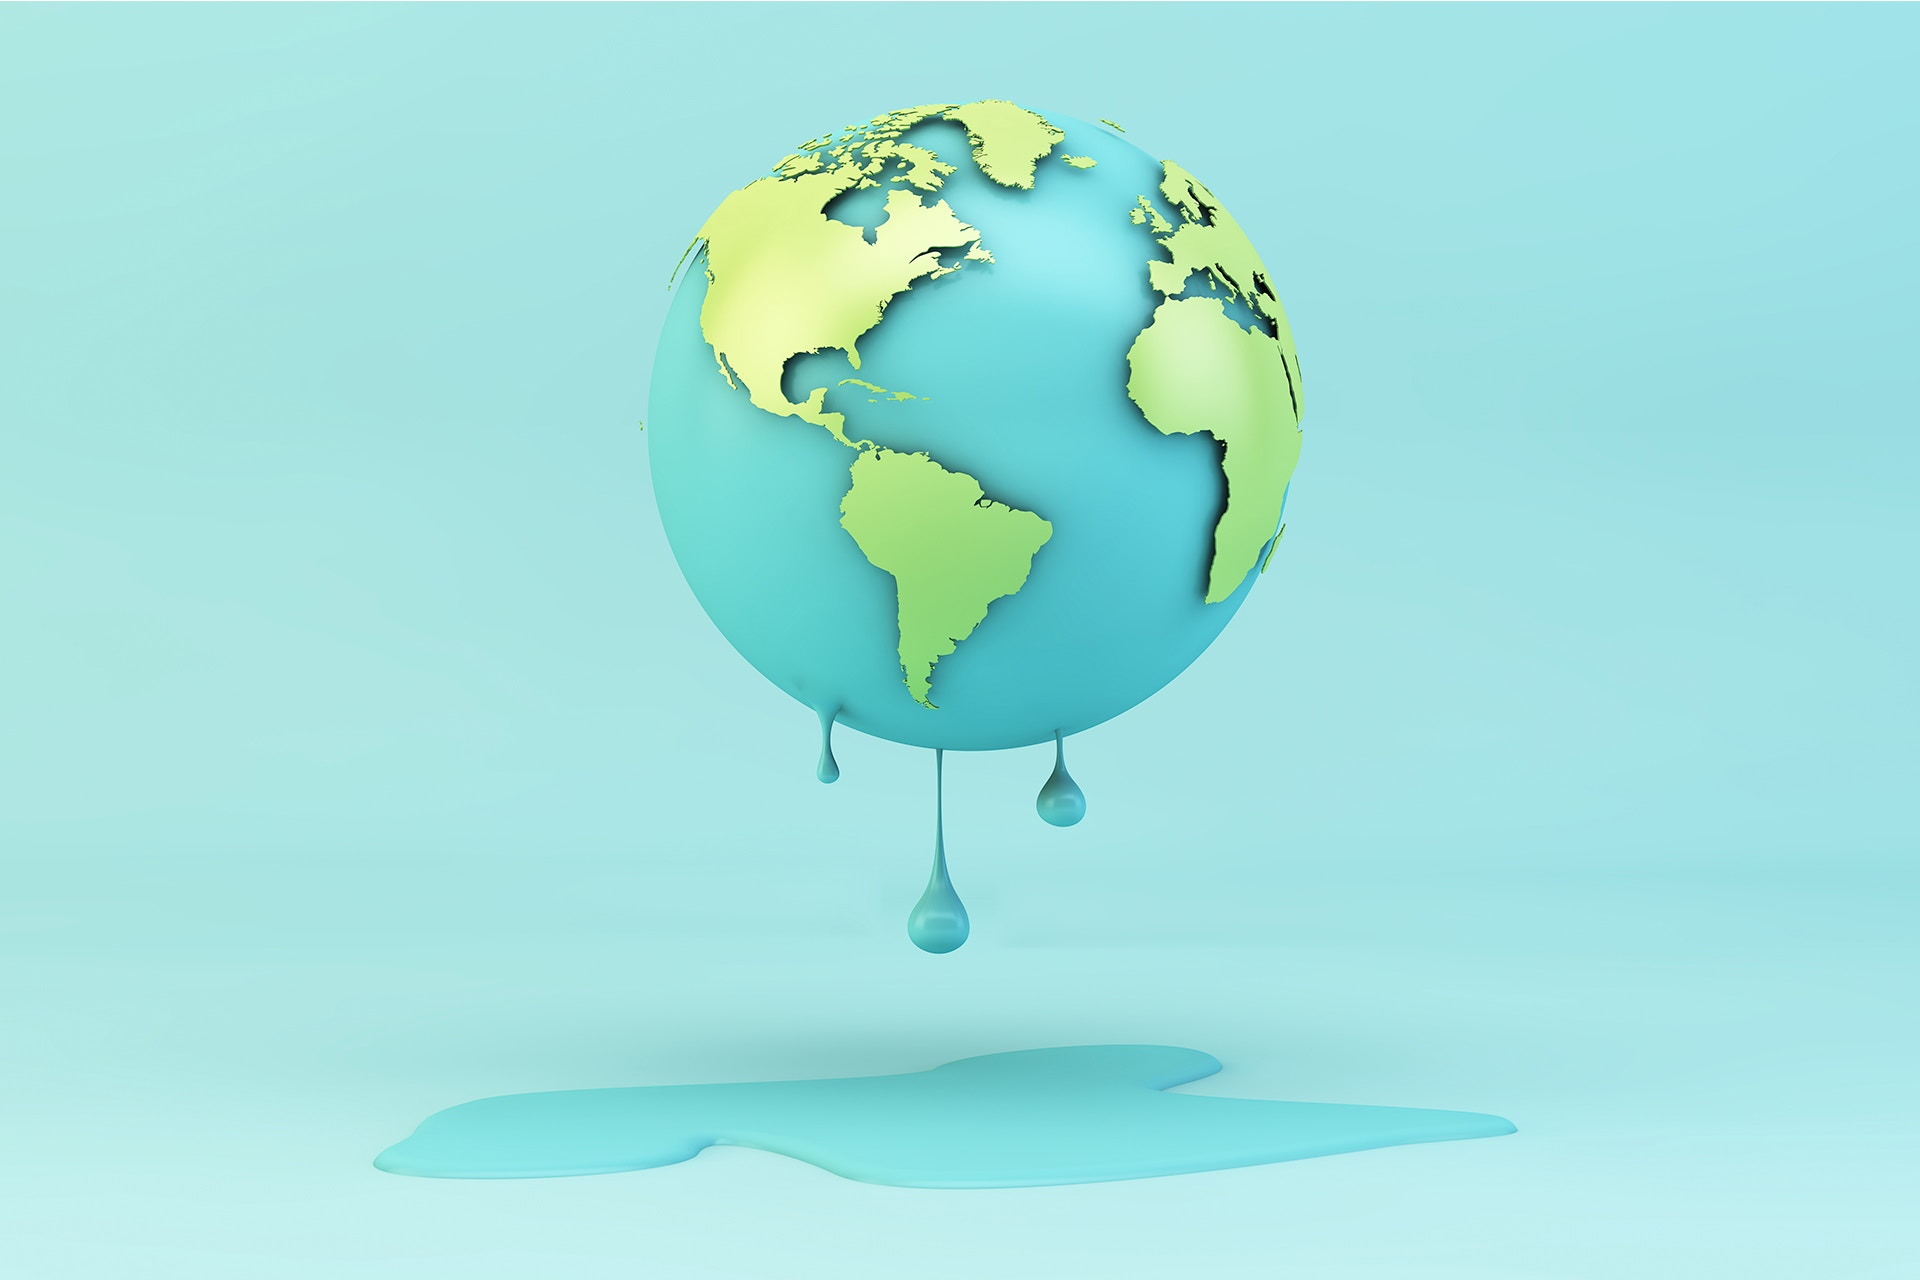 A cartoon model of the Earth that is melting. Below the floating Earth is a puddle. In this blog post, we examine how the topic of climate change is being discussed on social media.